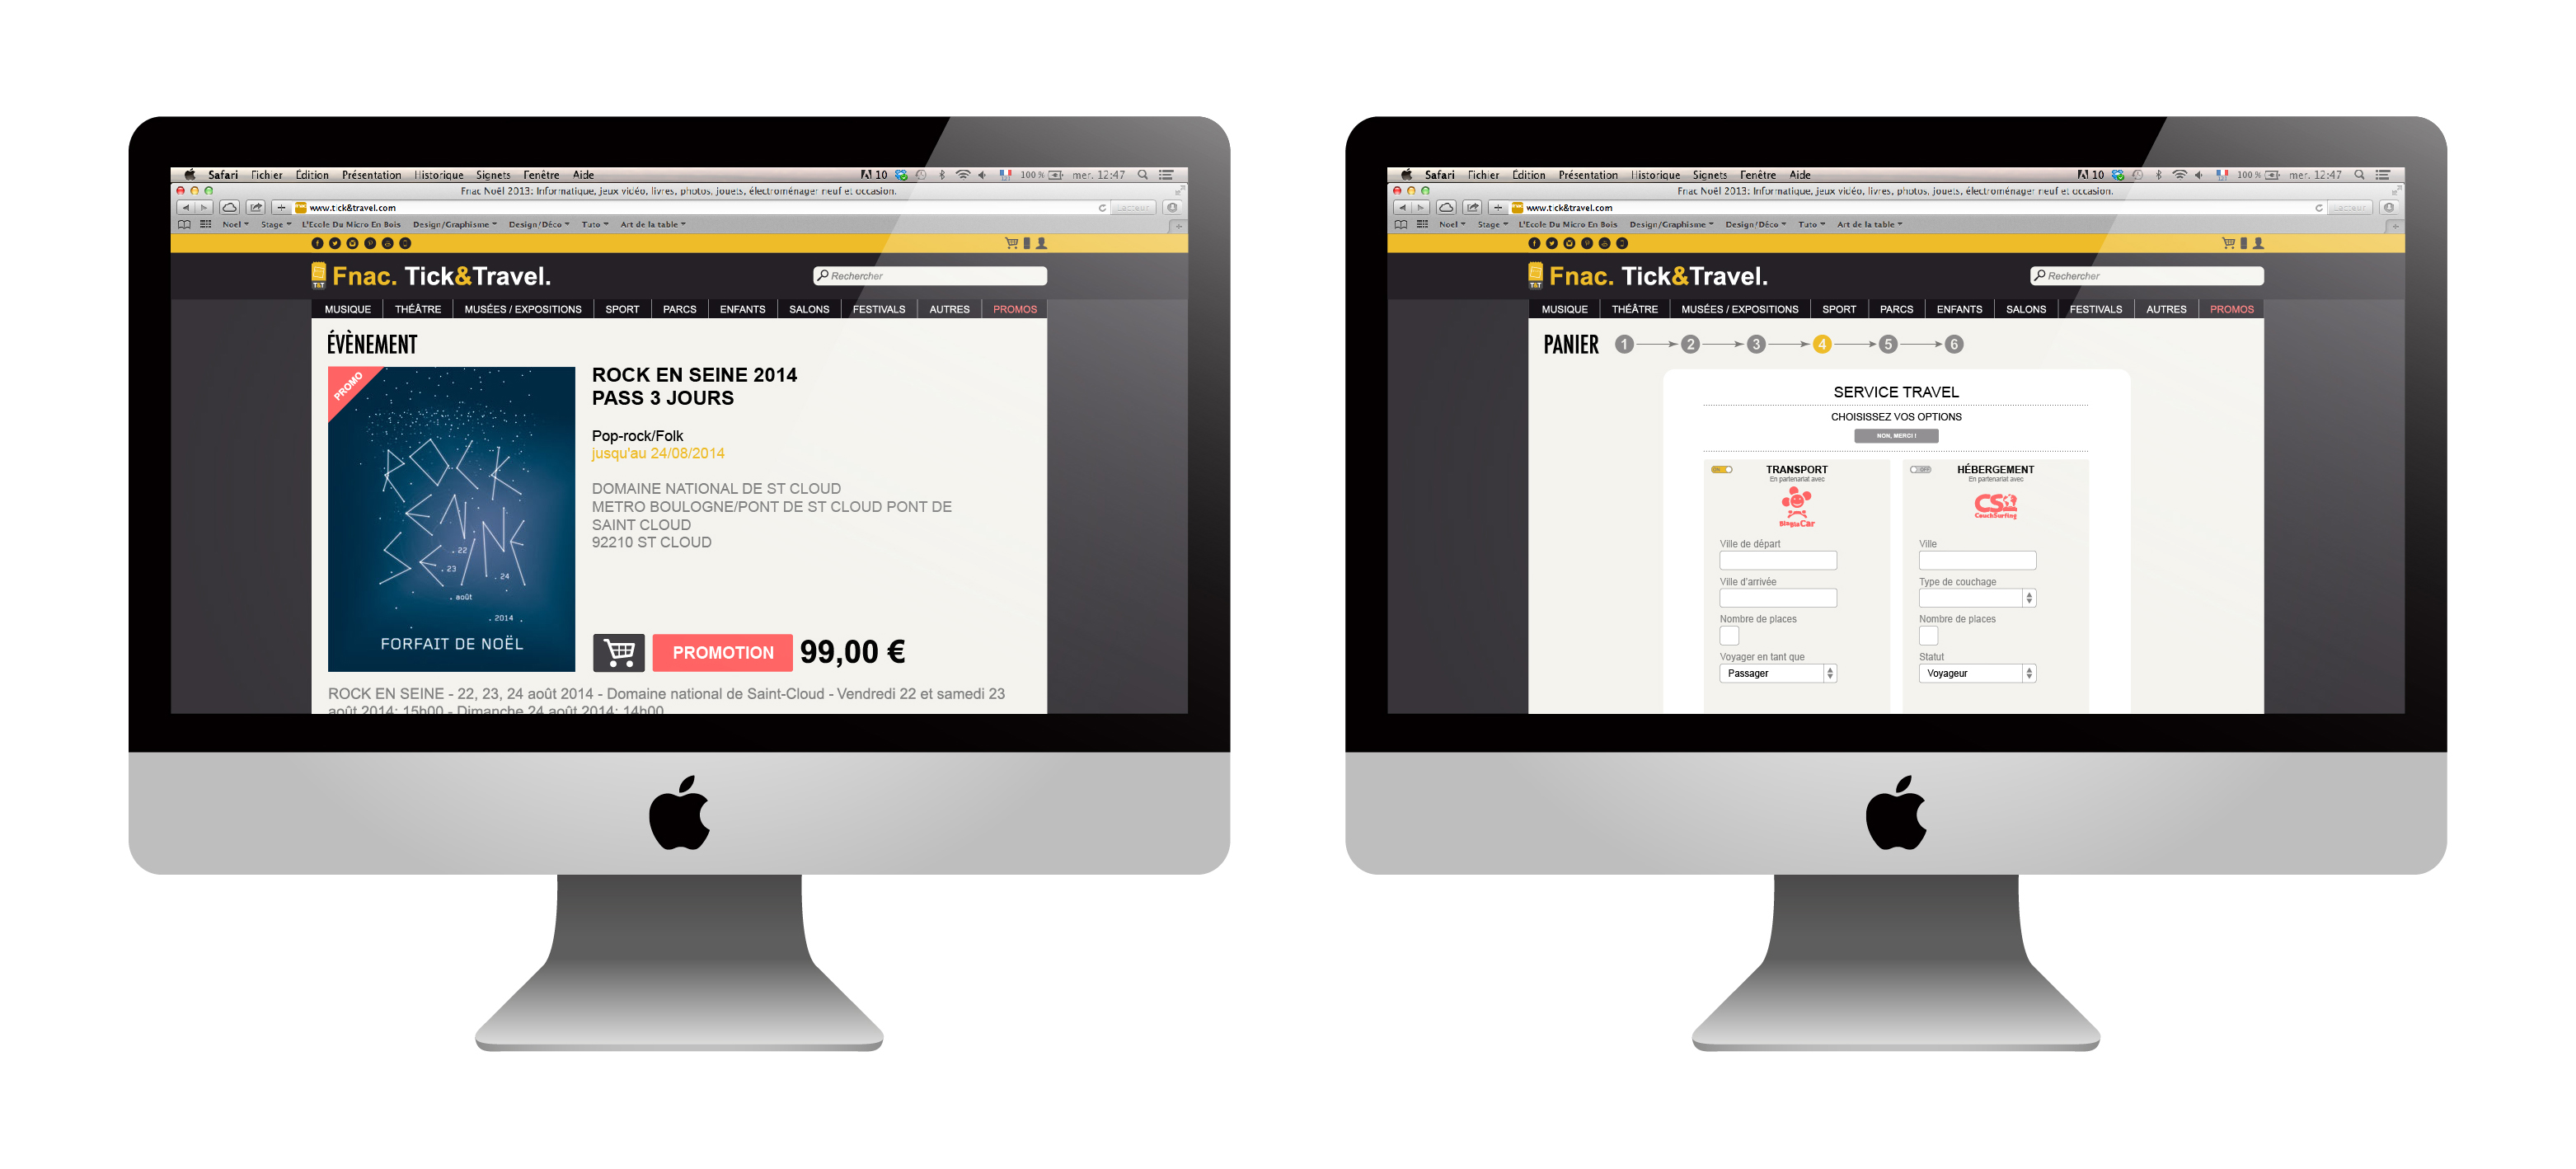 Jope design - FNAC TICK&TRAVEL - Site internet v2